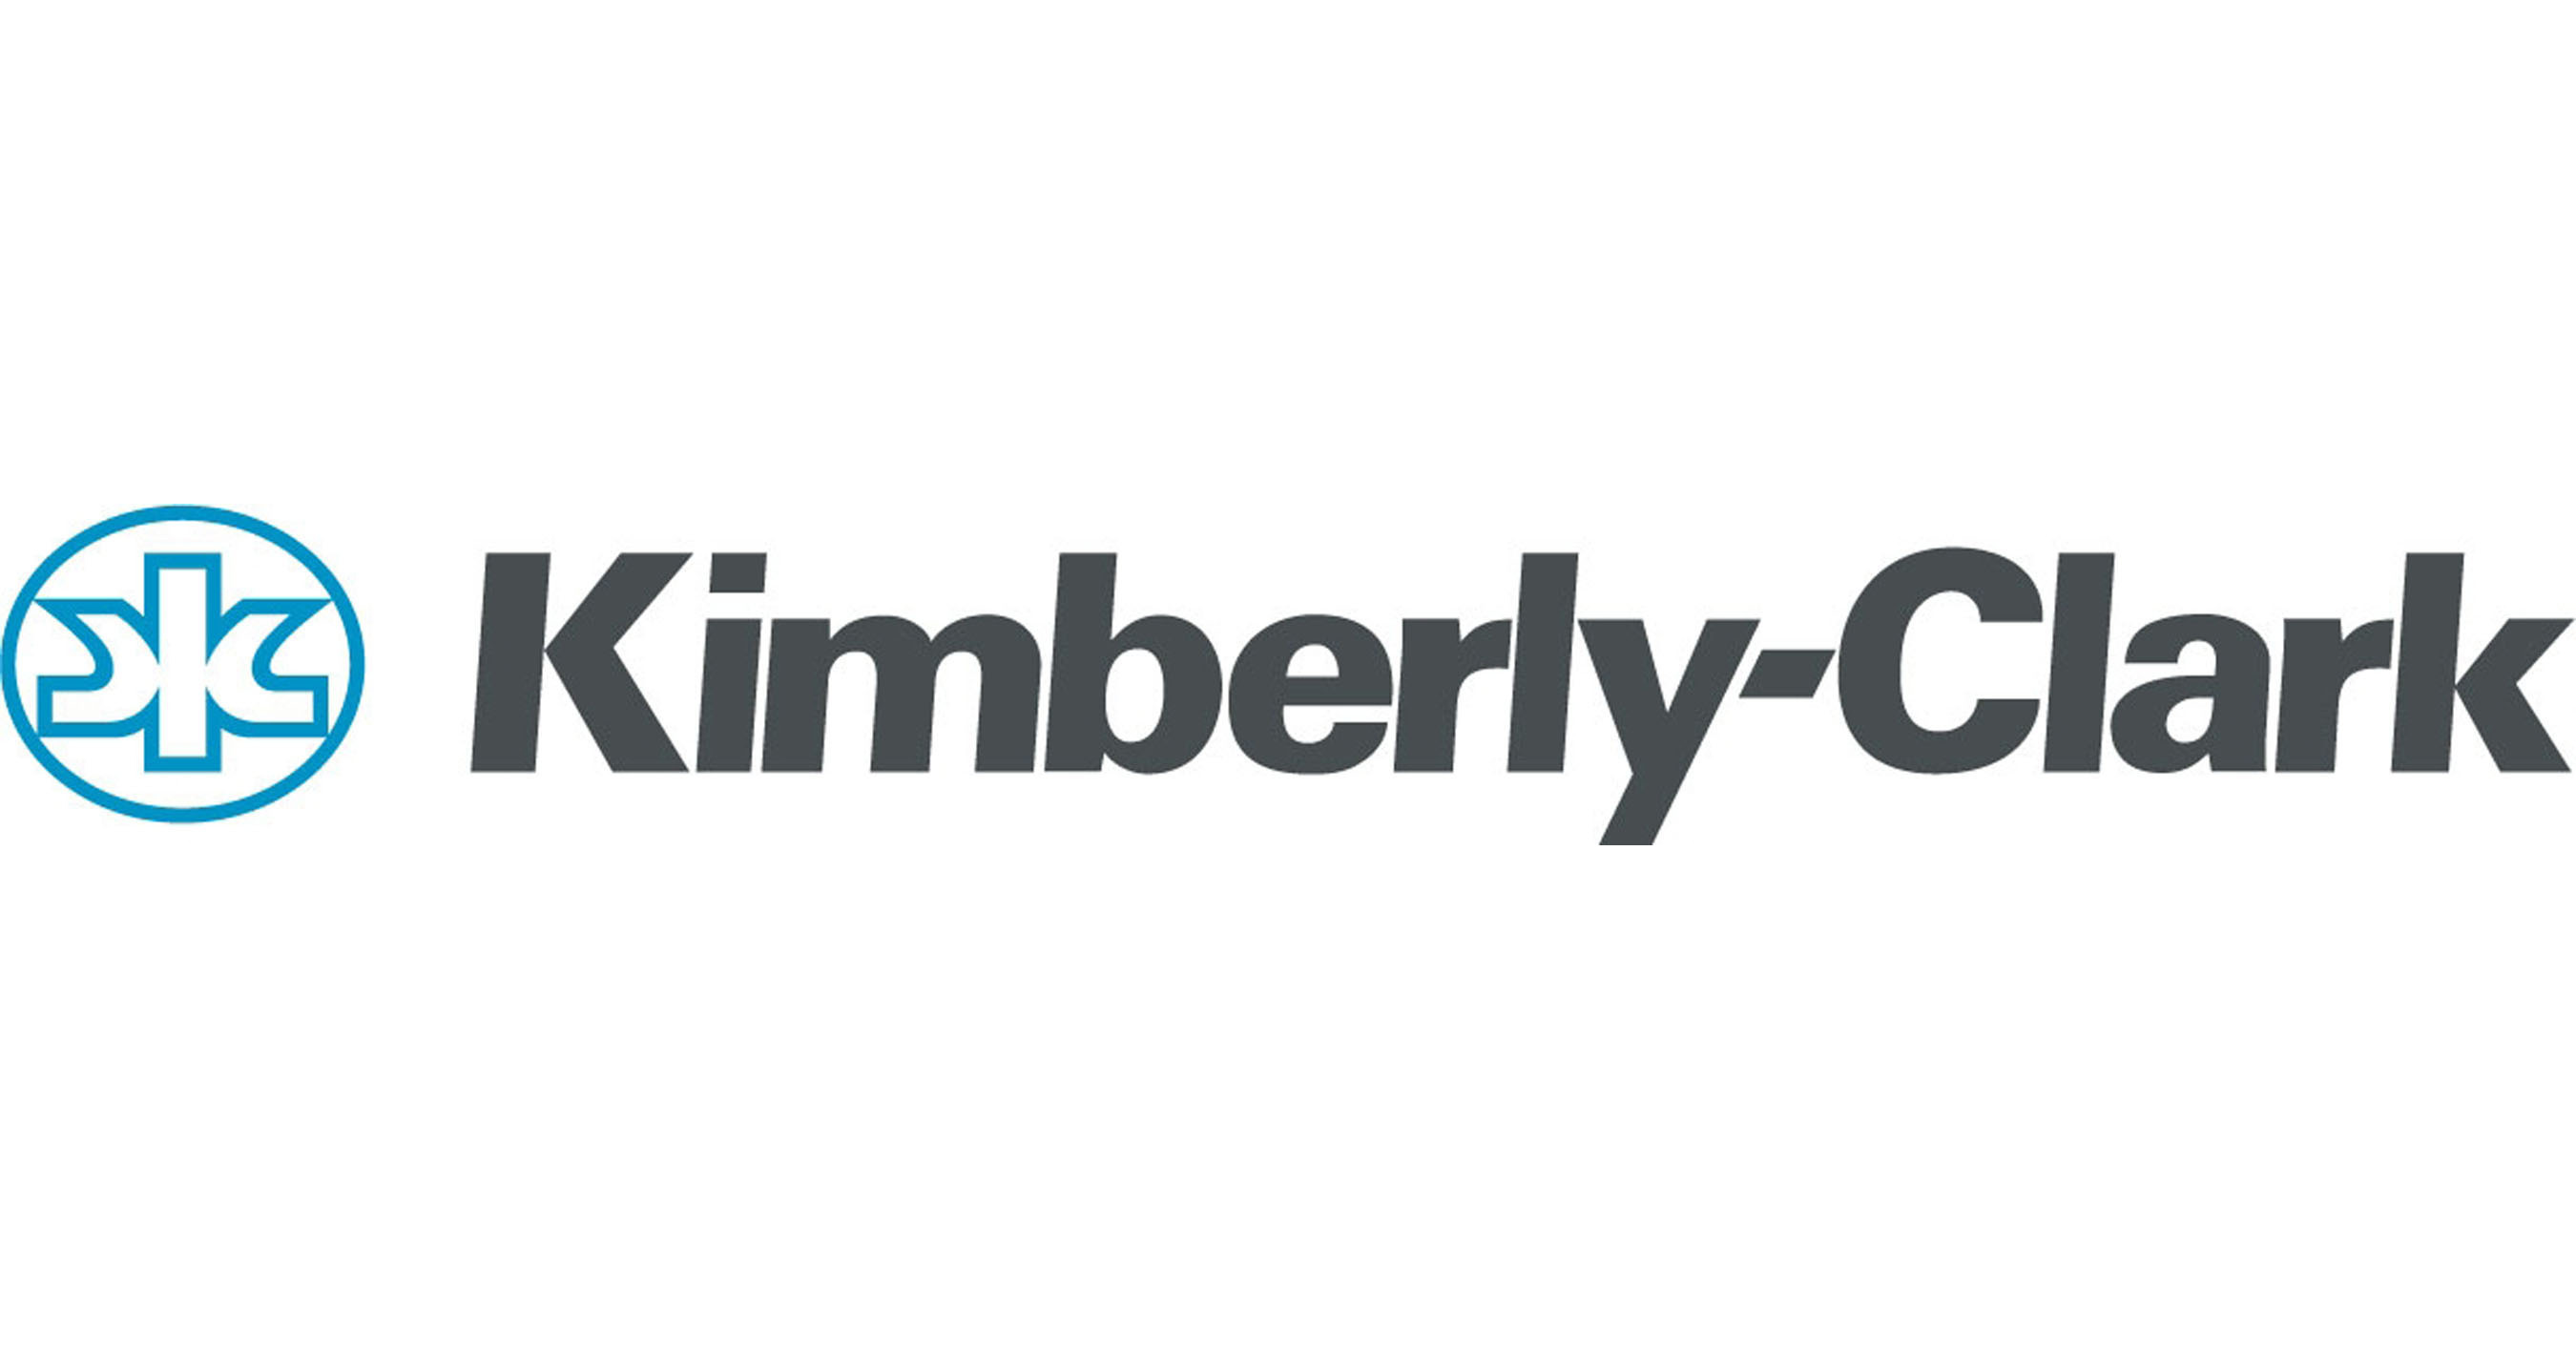 restructuring of kimberly clark Toiletry-maker kimberly-clark announced on tuesday it will cut about 13 percent of its global workforce as part of a major restructuring initiative.